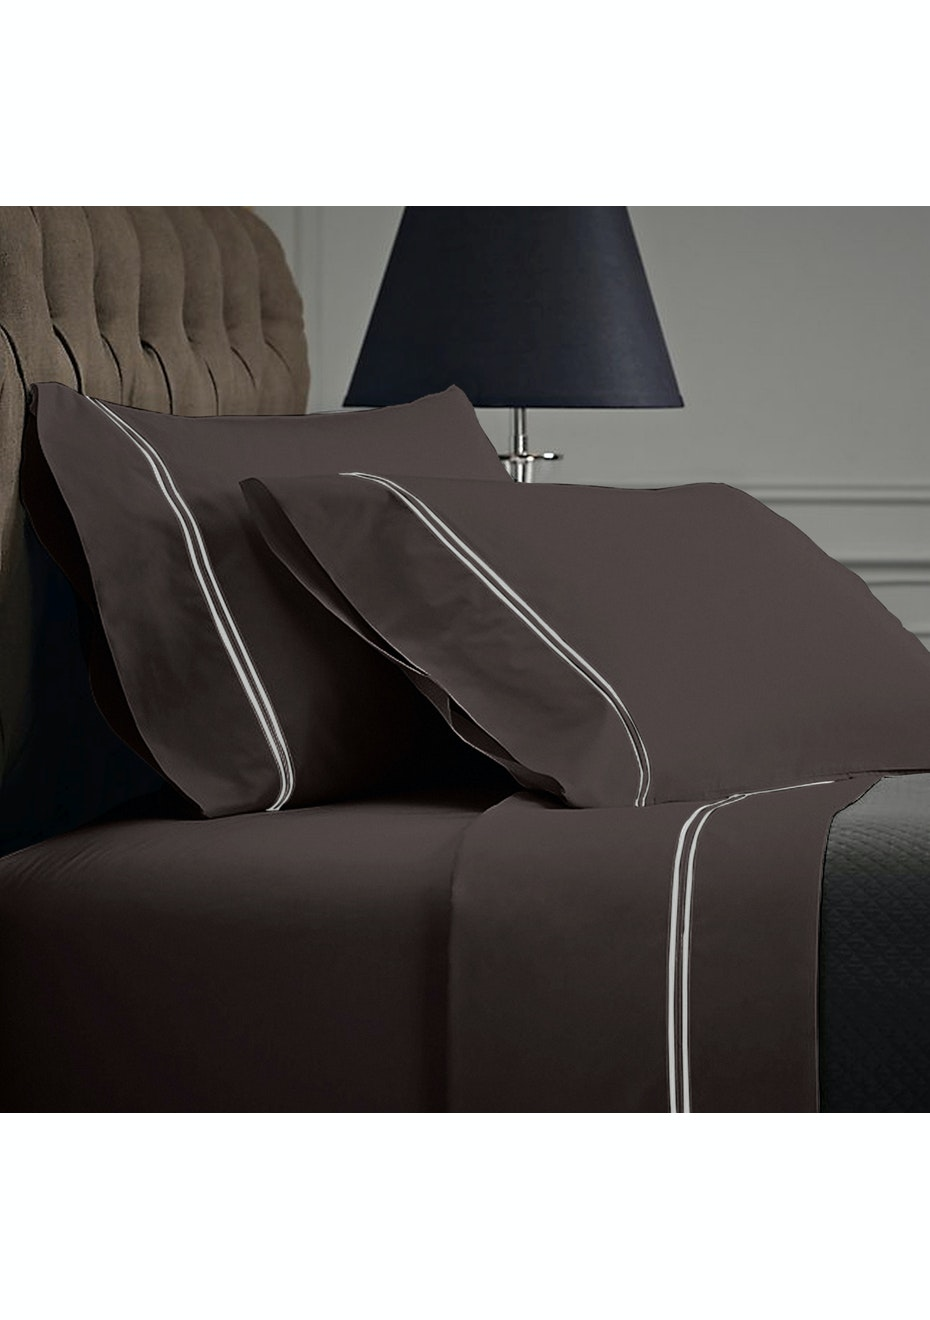 Style & Co 1000 Thread count Egyptian Cotton Hotel Collection Sorrento Sheet sets Double Coal